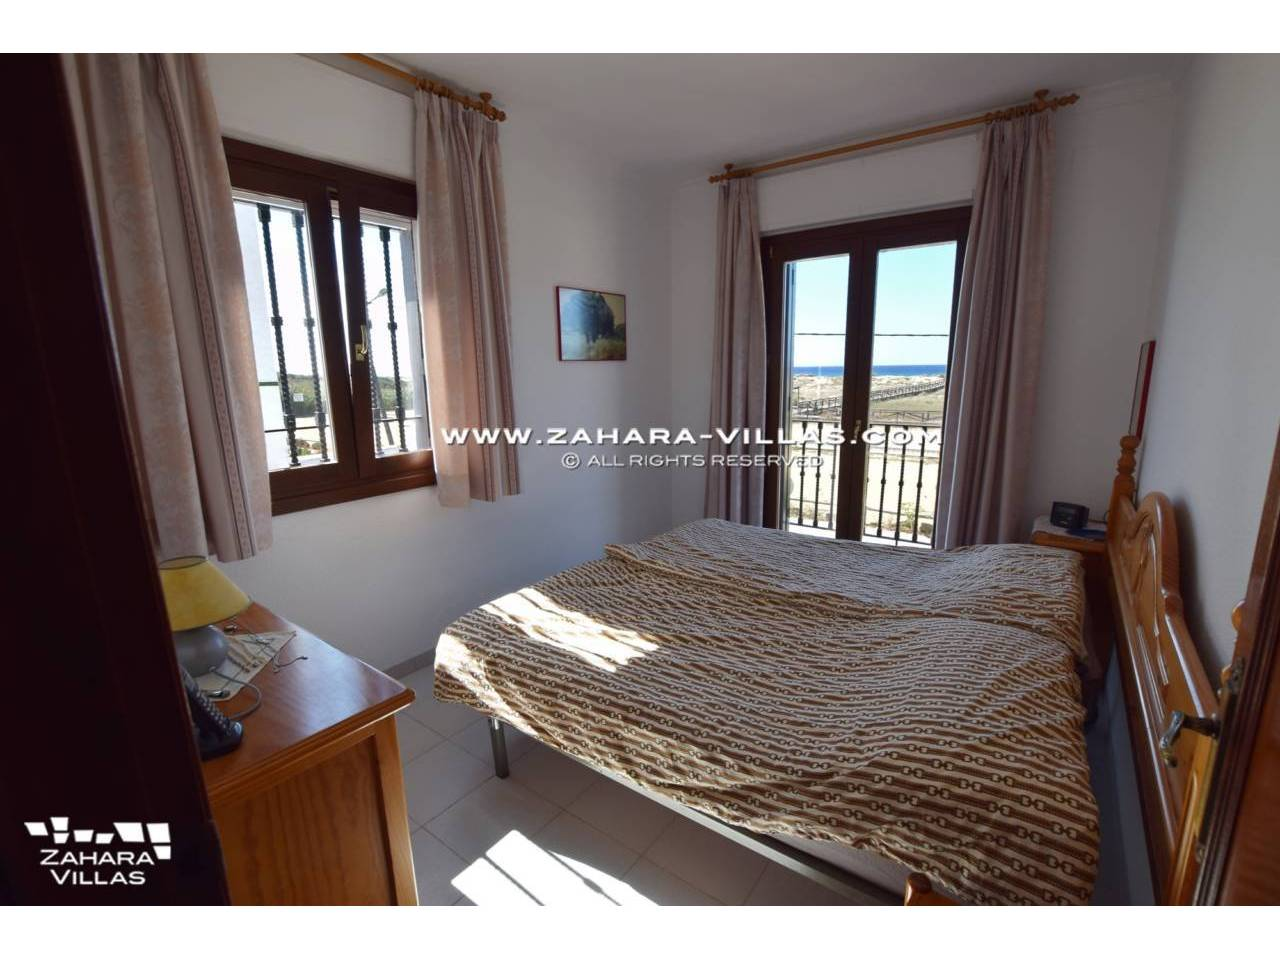 Imagen 6 de House for sale on the front beach, with sea views in Zahara de los Atunes